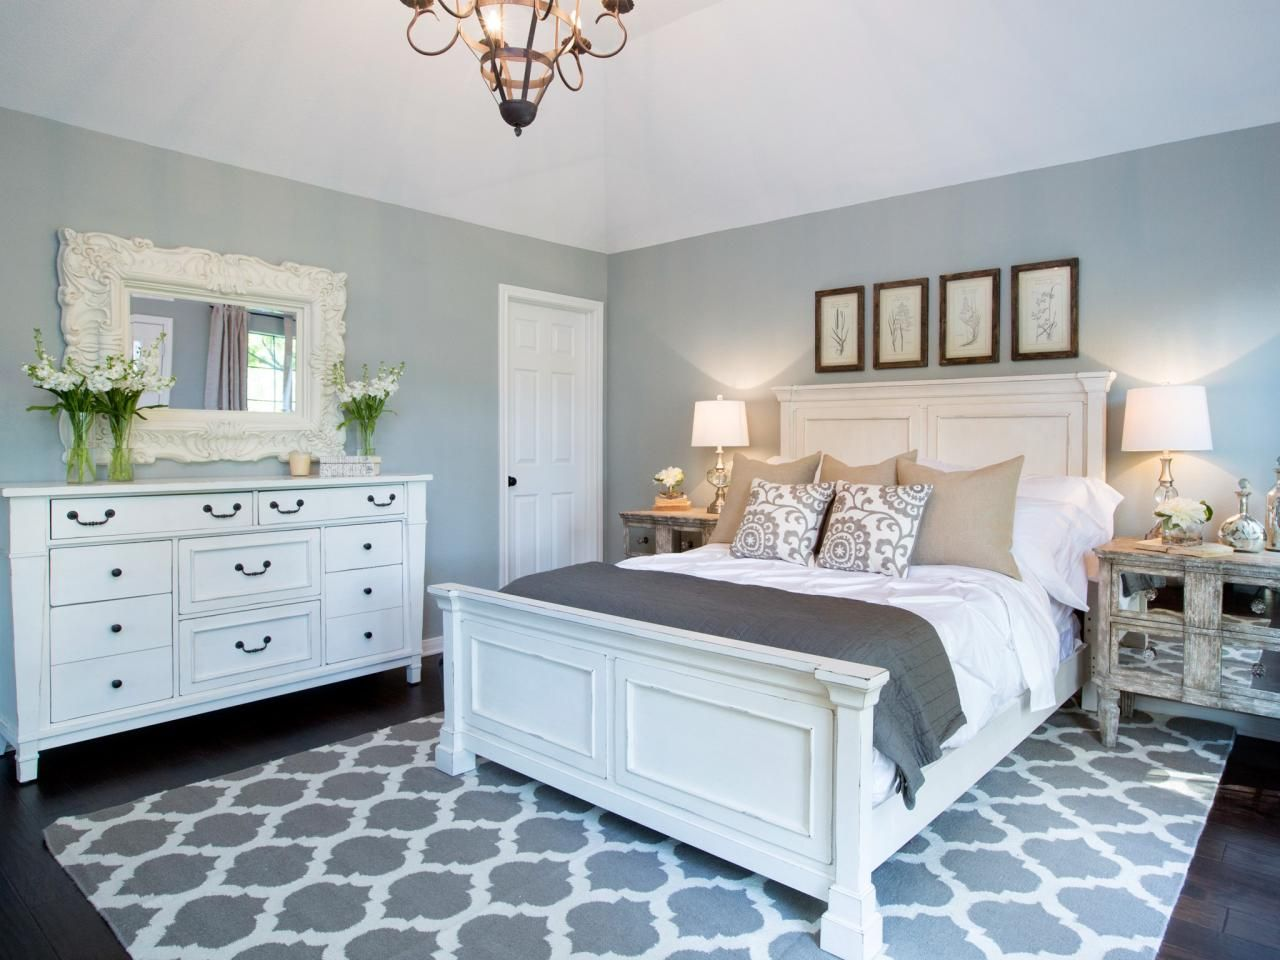 Photos Hgtv Fixer Upper With Chip And Joanna Gaines Have Black Bedroom  Furniture Silver Accent Handles Ordered The Same Rug Lamps White Shades  Ribbings ...